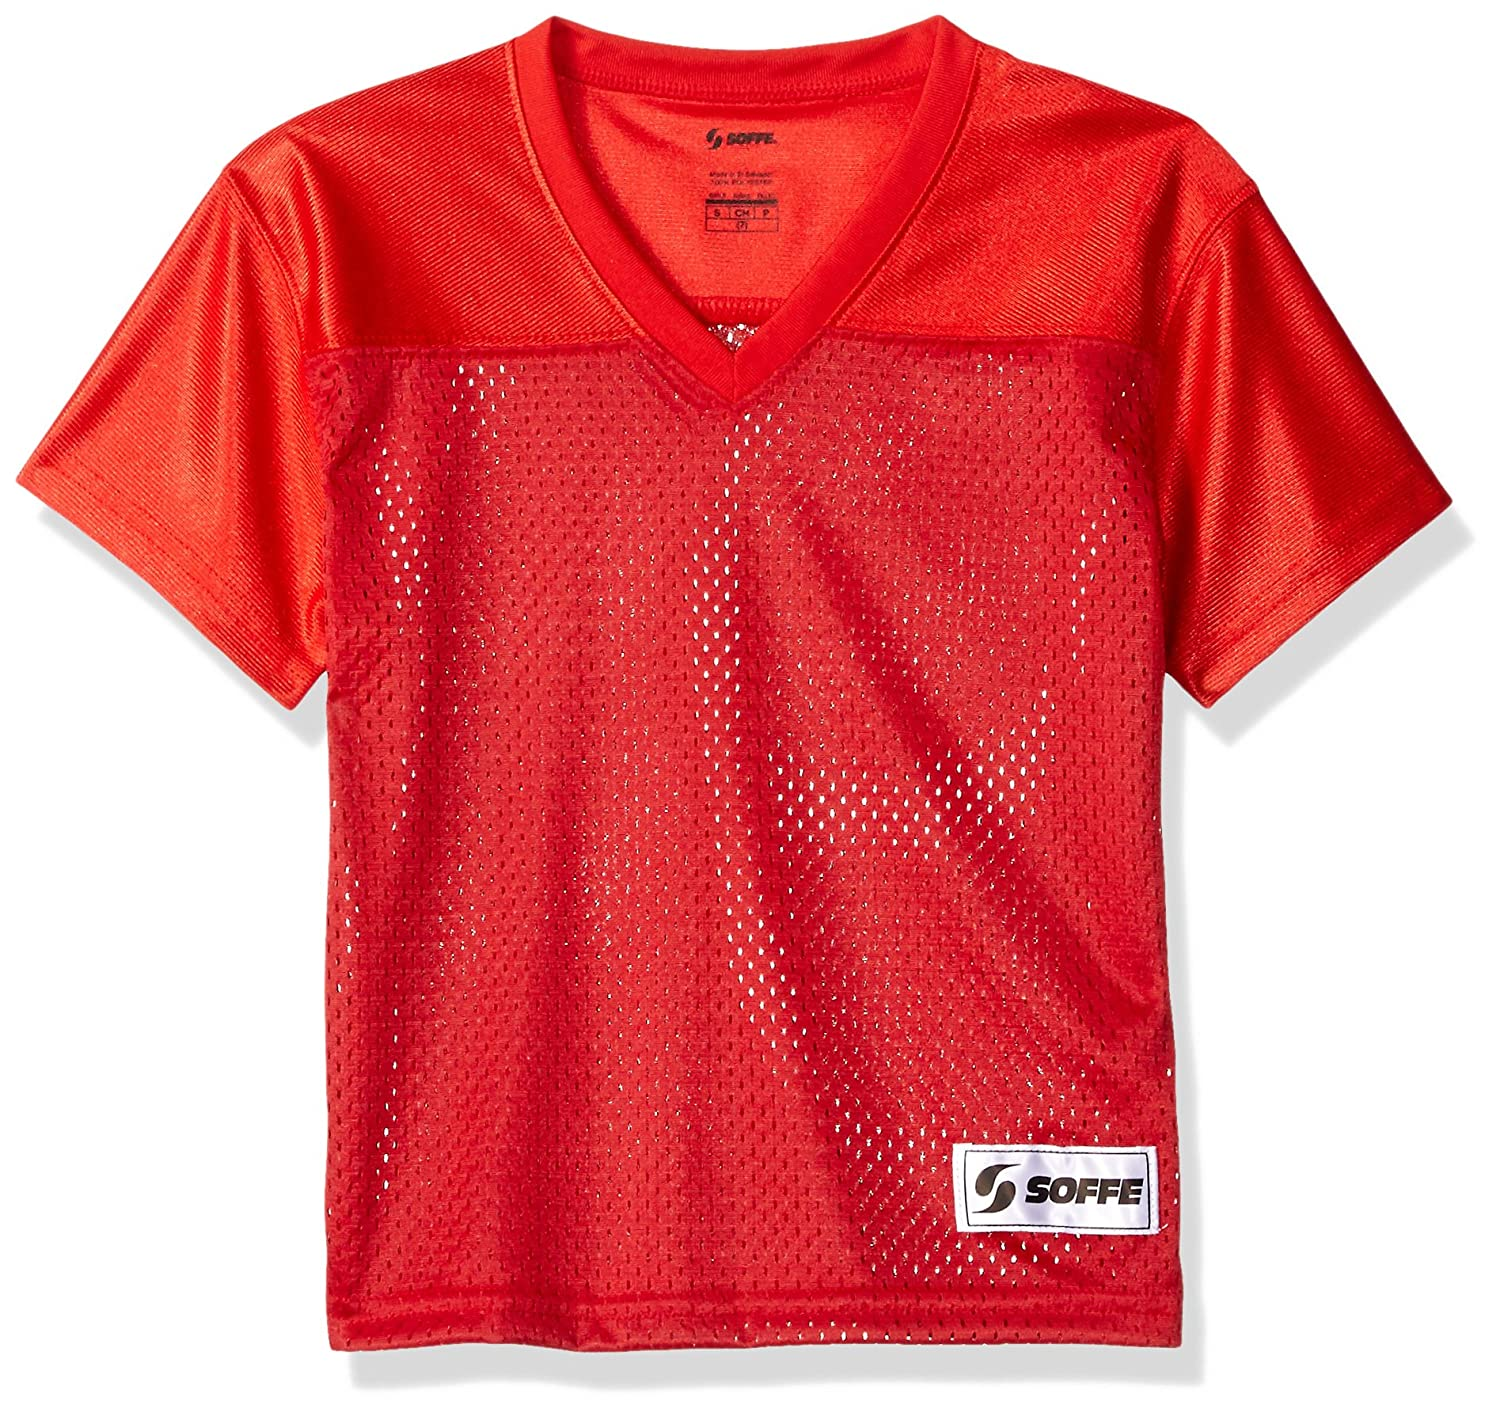 Soffe Girls' Big Football Jersey Soffe Children' s Apparel 4692G